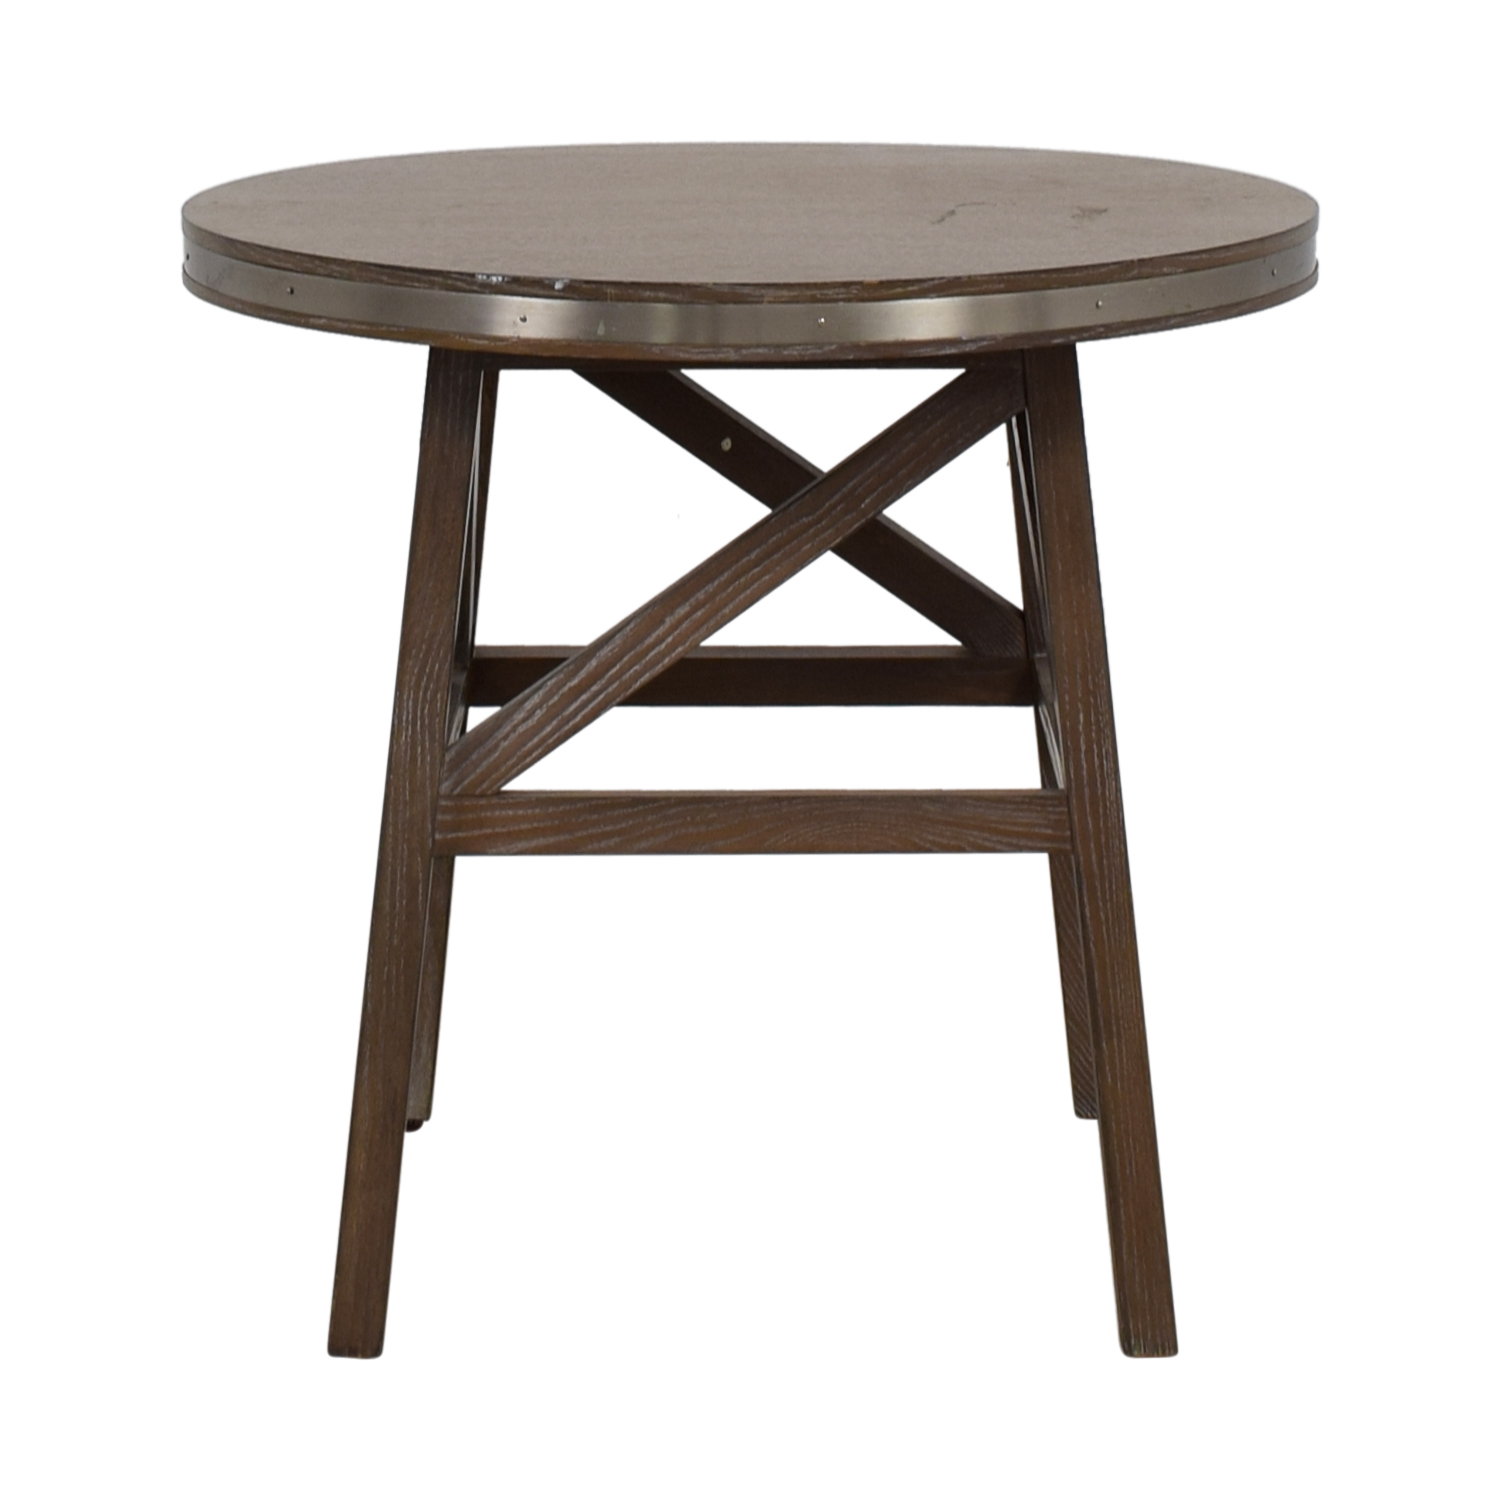 Mitchell Gold + Bob Williams Mitchell Gold + Bob Williams Round Wood Side Table Tables